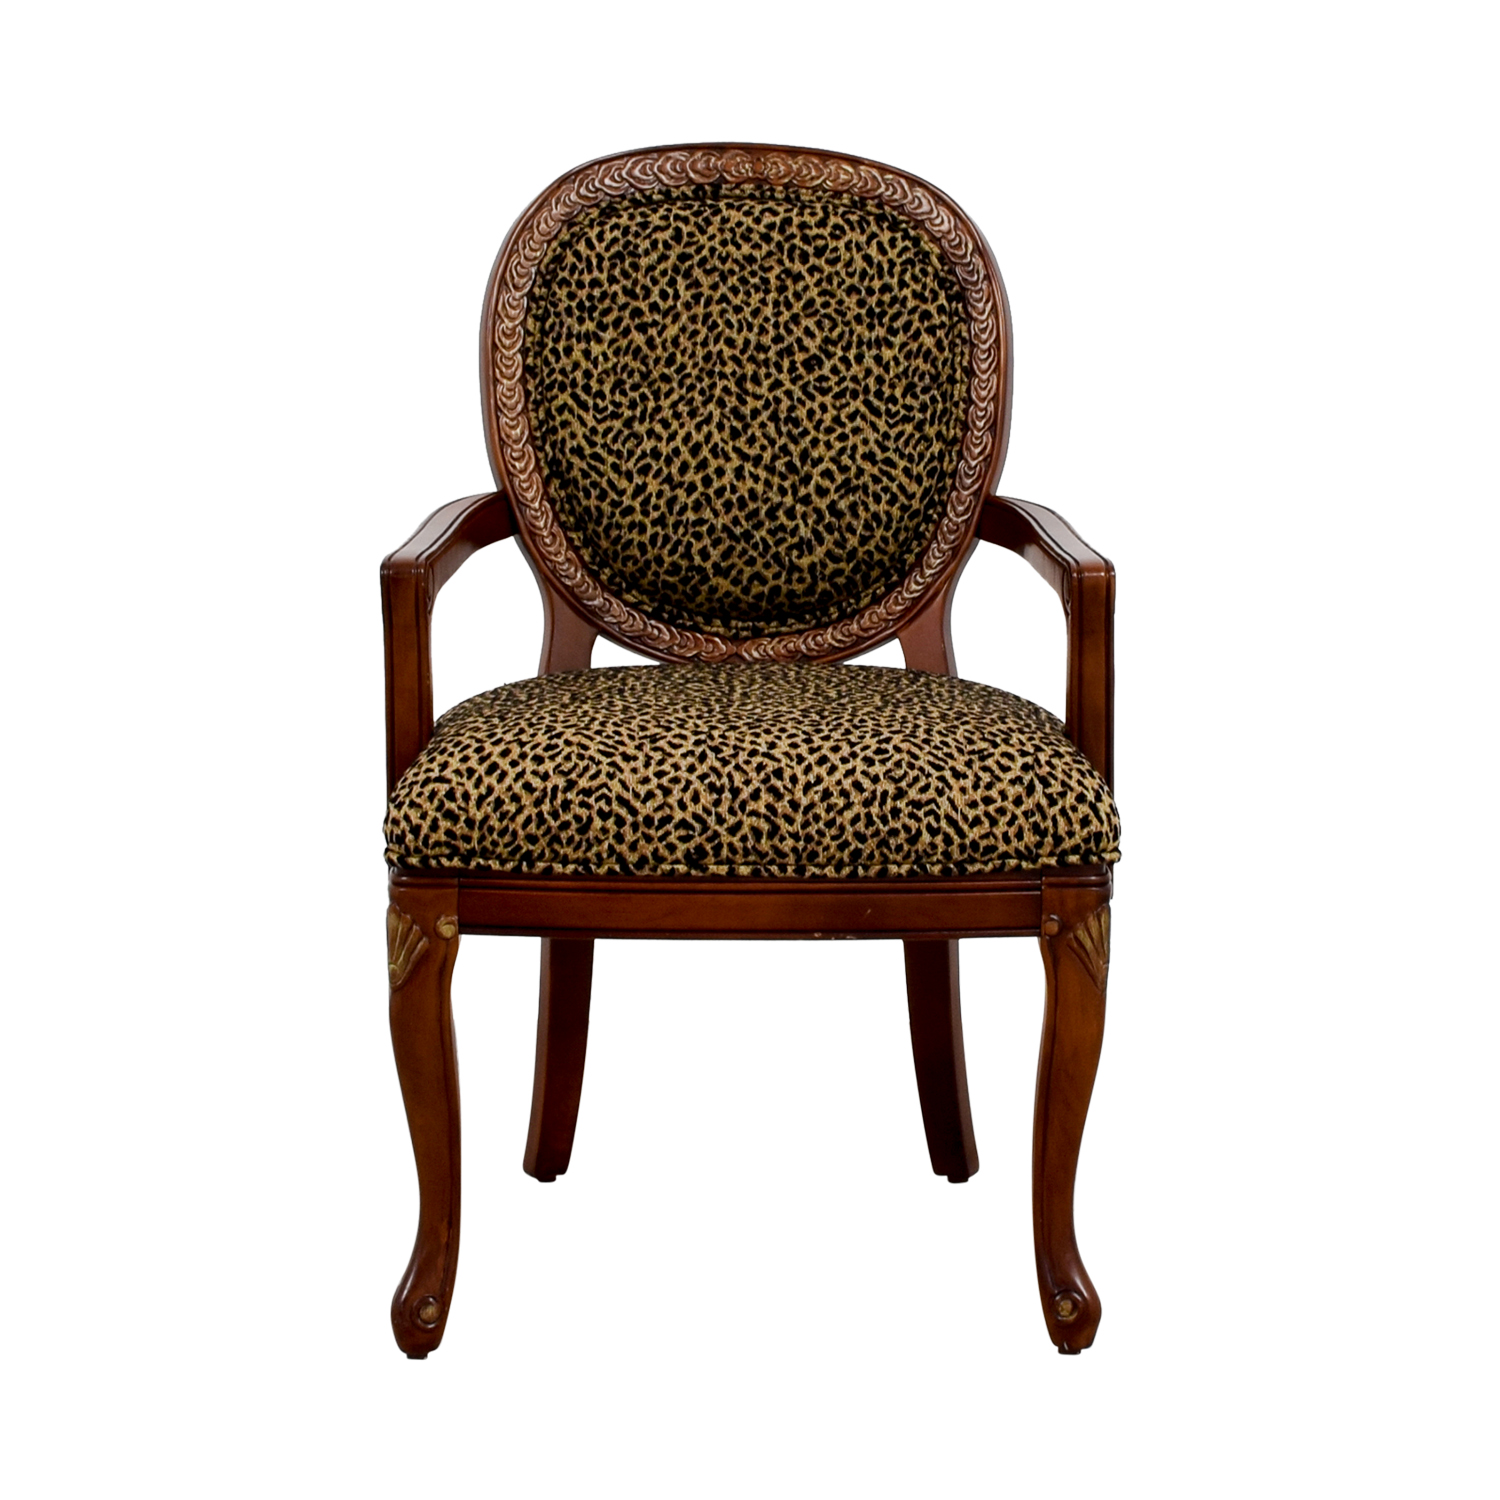 Leopard Upholstered Wood Arm Chair CHEETAH PRINT & BROWN